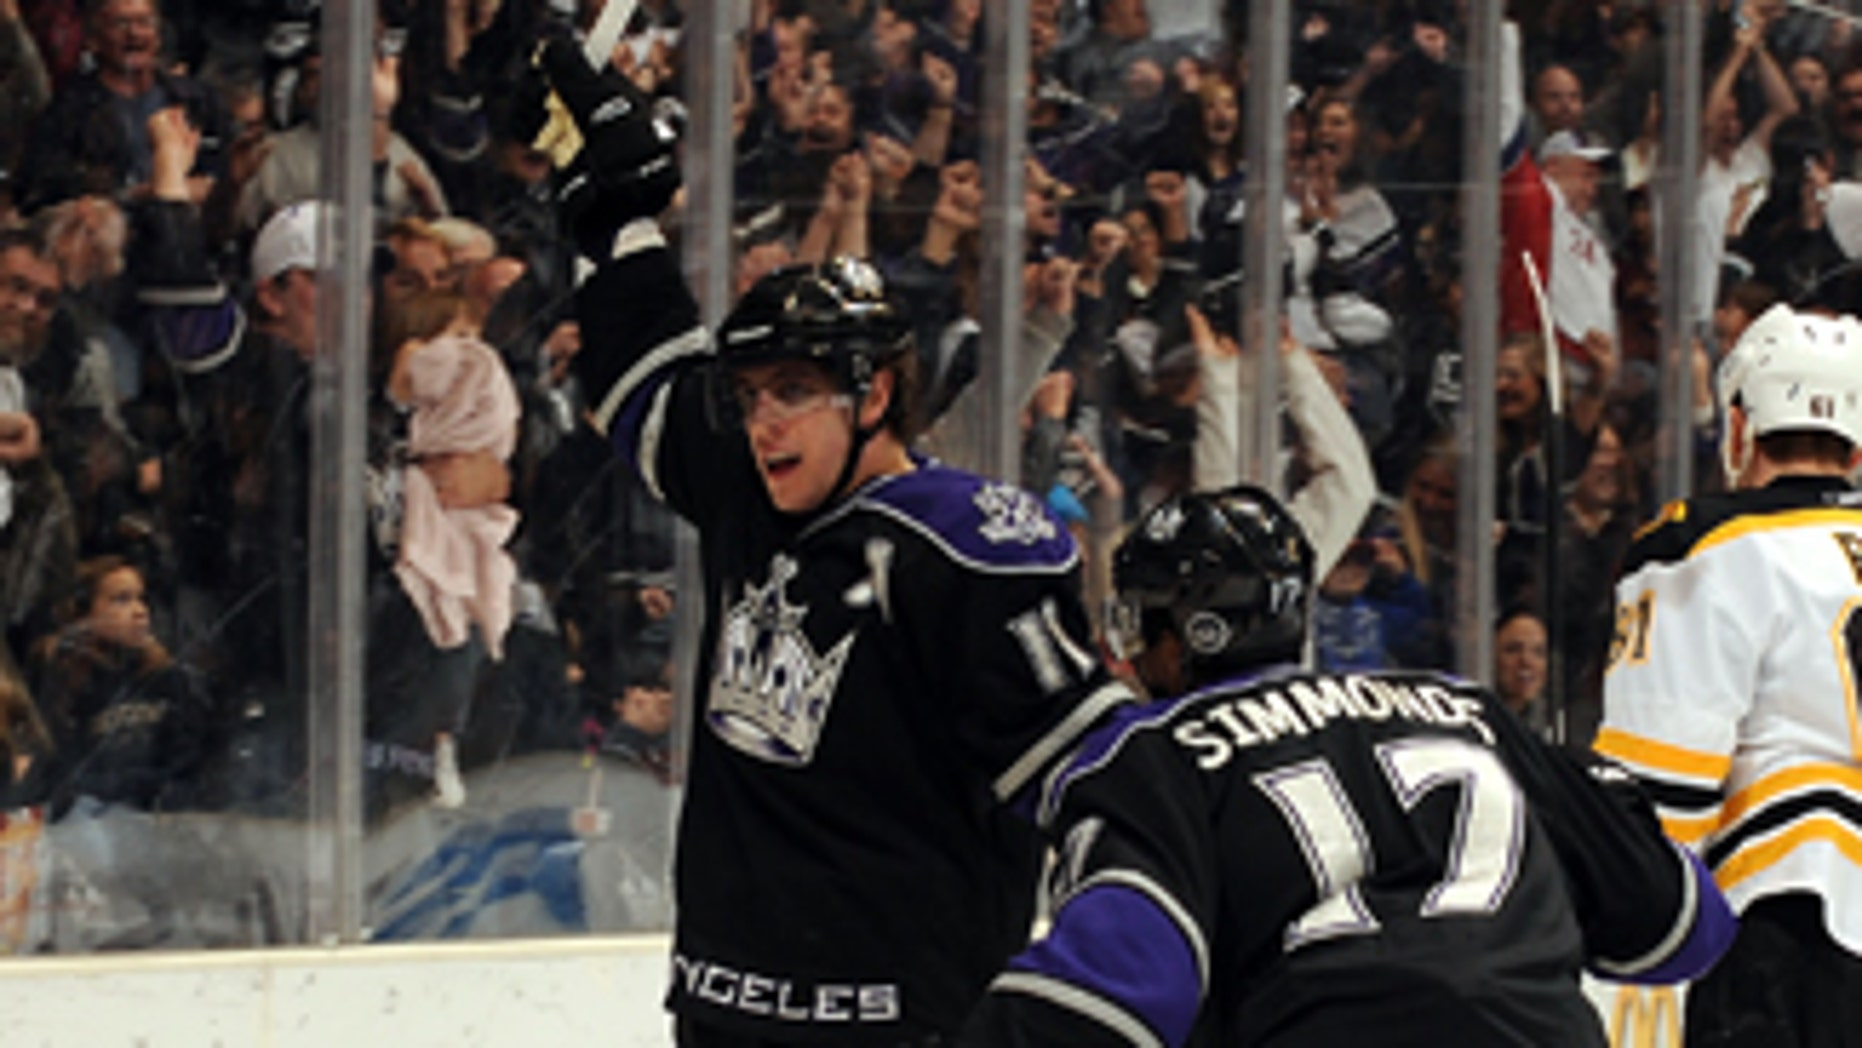 LOS ANGELES, CA - JANUARY 16:  Anze Kopitar #11 of the Los Angeles Kings celebrates after scoring a goal against the Boston Bruins on January 16, 2010 at Staples Center in Los Angeles, California. (Photo by Noah Graham/NHLI via Getty Images) *** Local Caption *** Anze Kopitar